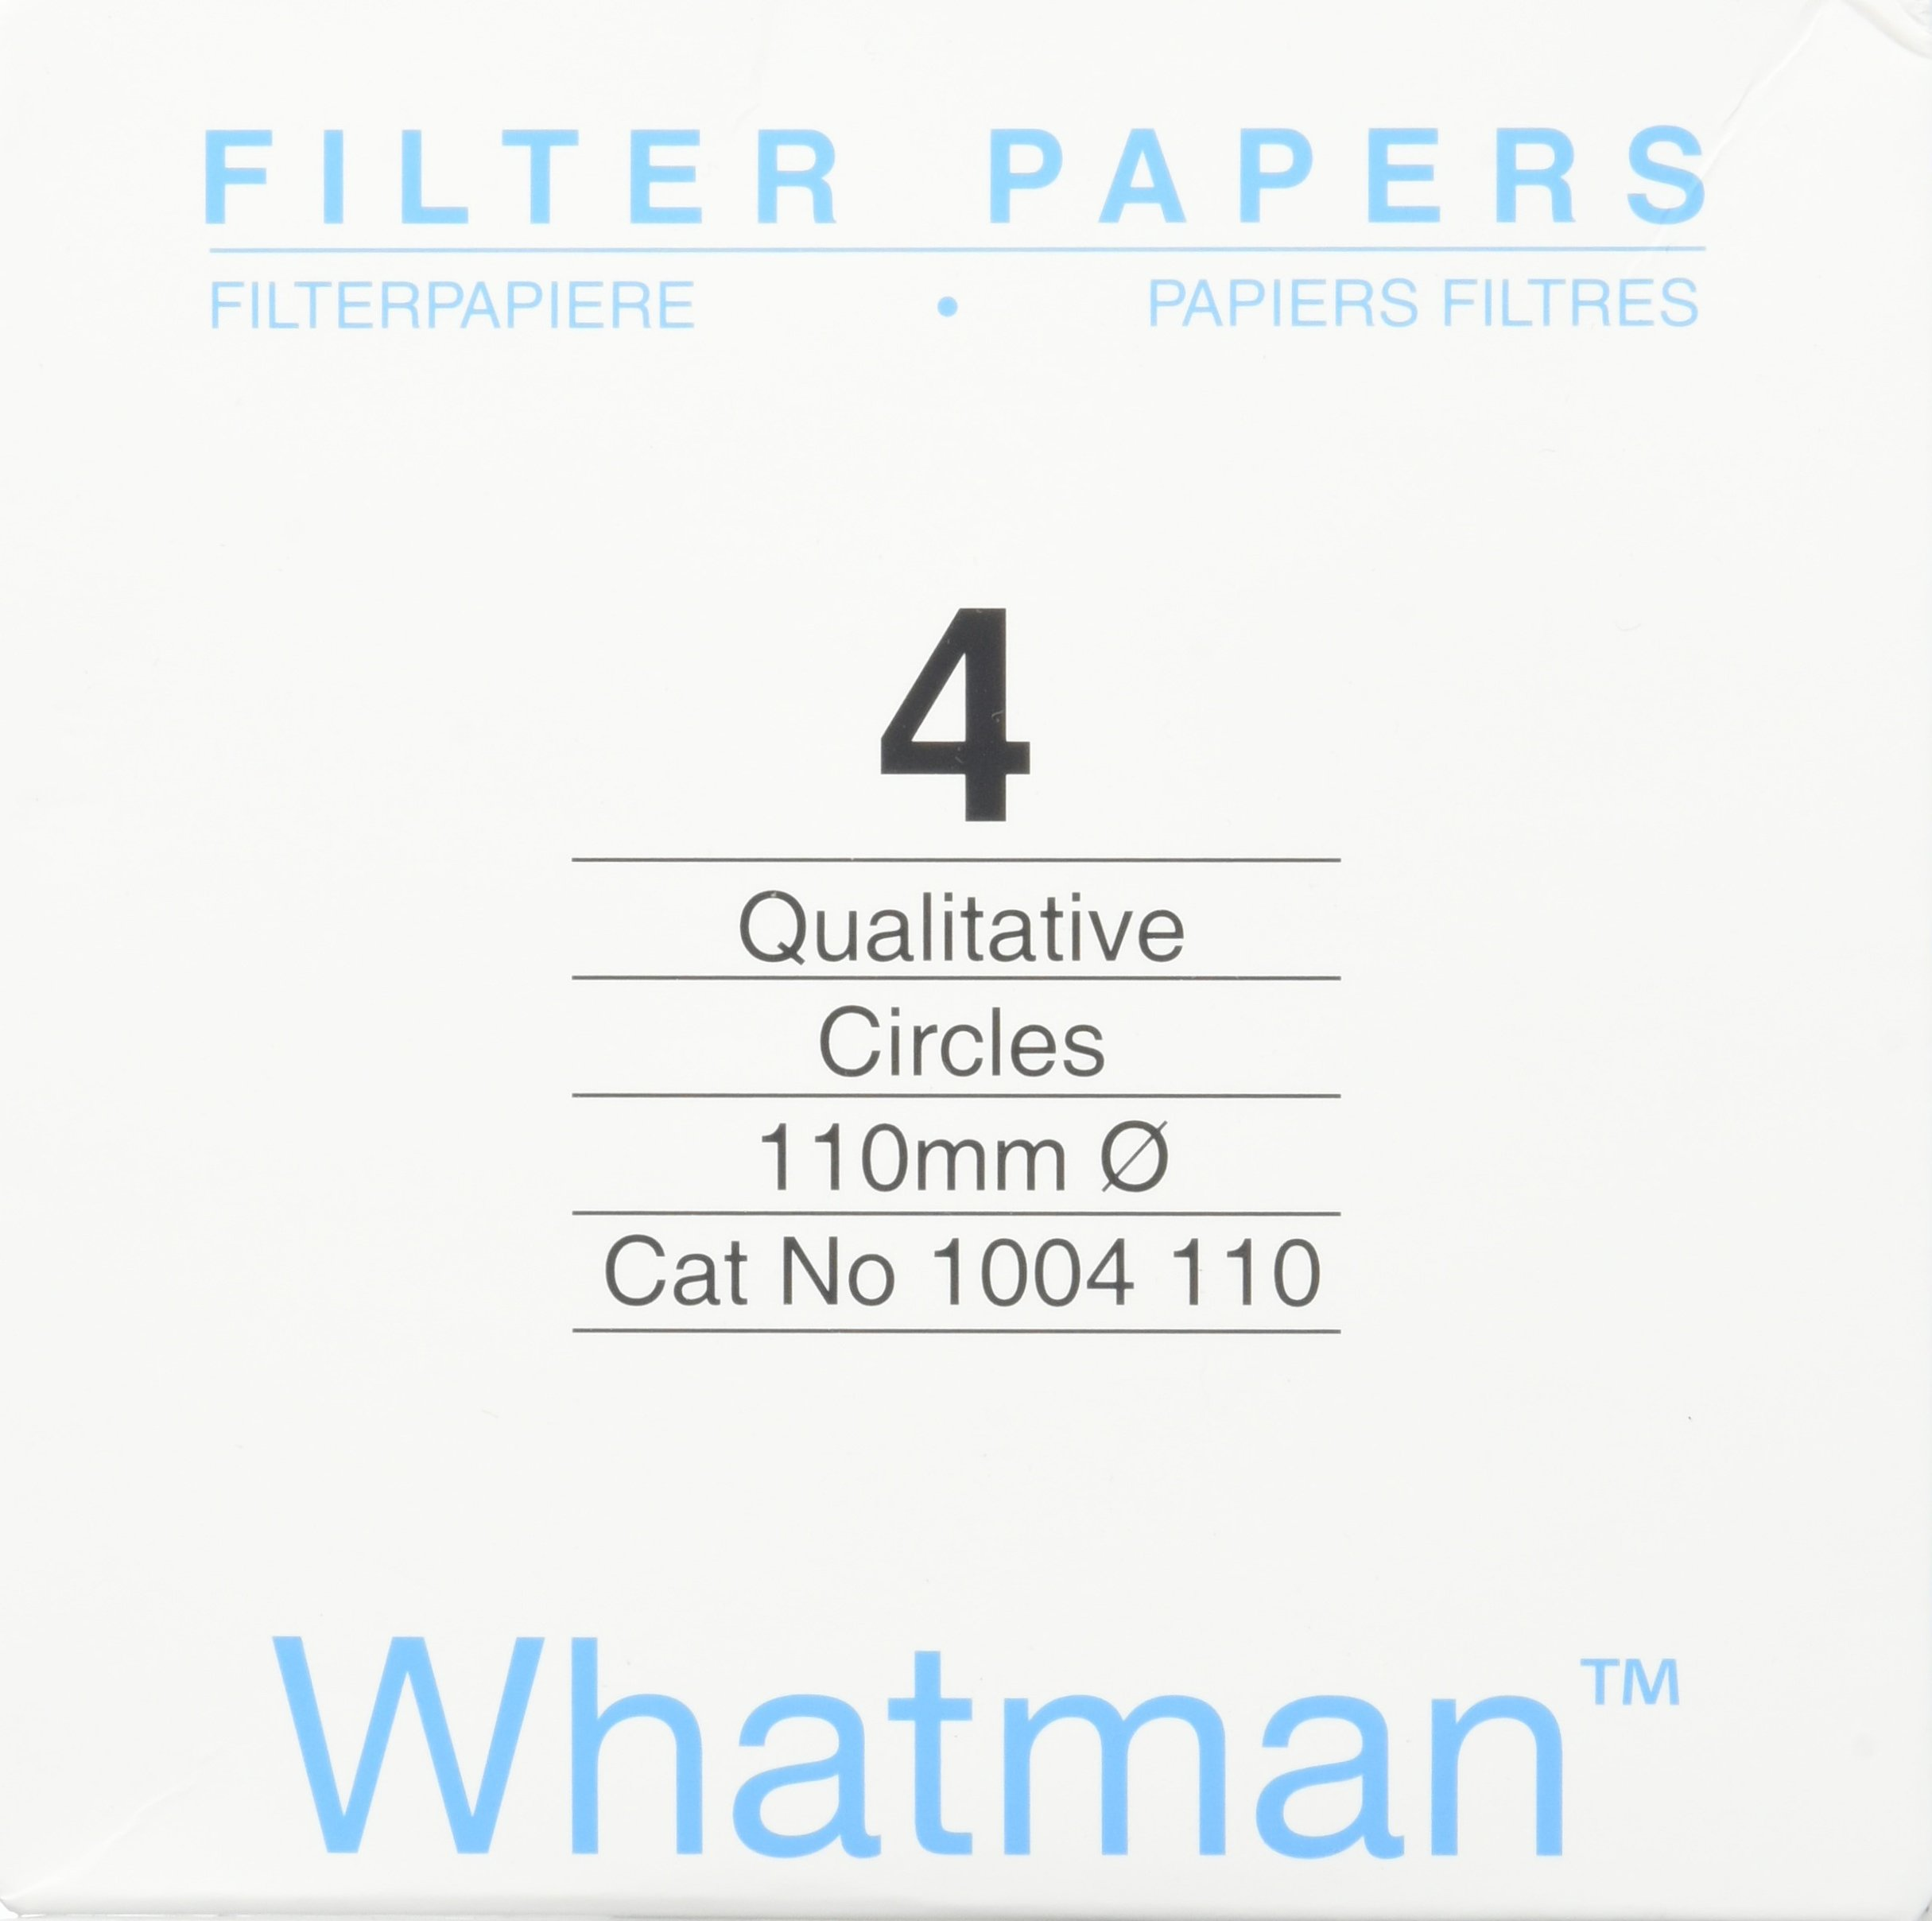 Whatman 4712N25PK 1004110 Grade 4 Qualitative Filter Paper, 110 mm Thick and Max Volume 1621 ml/m (Pack of 100)